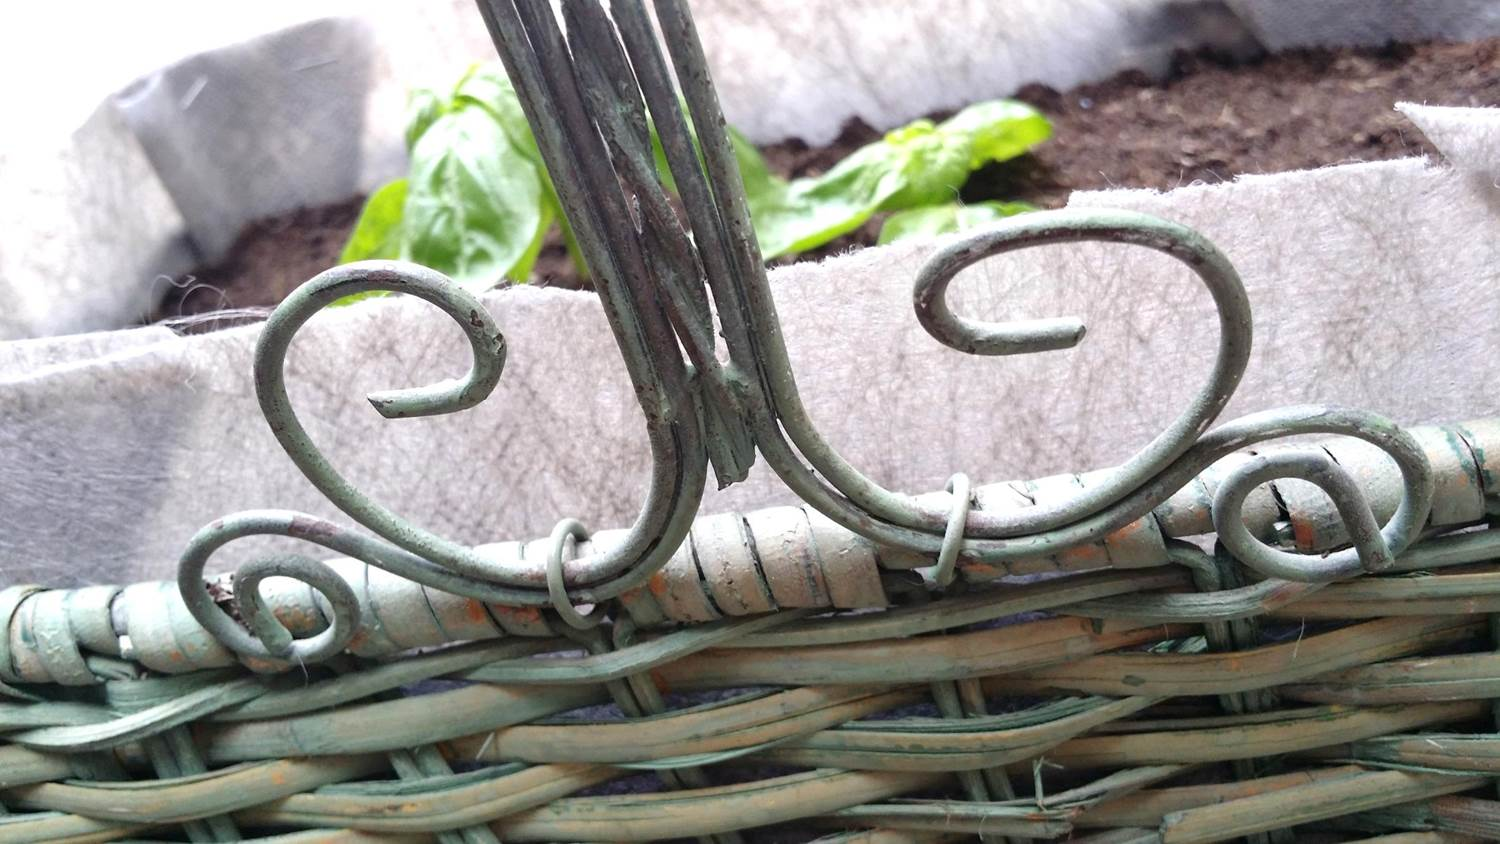 WENHUA DUVERGÉ - Romantic vegetable garden in recycled flower basket